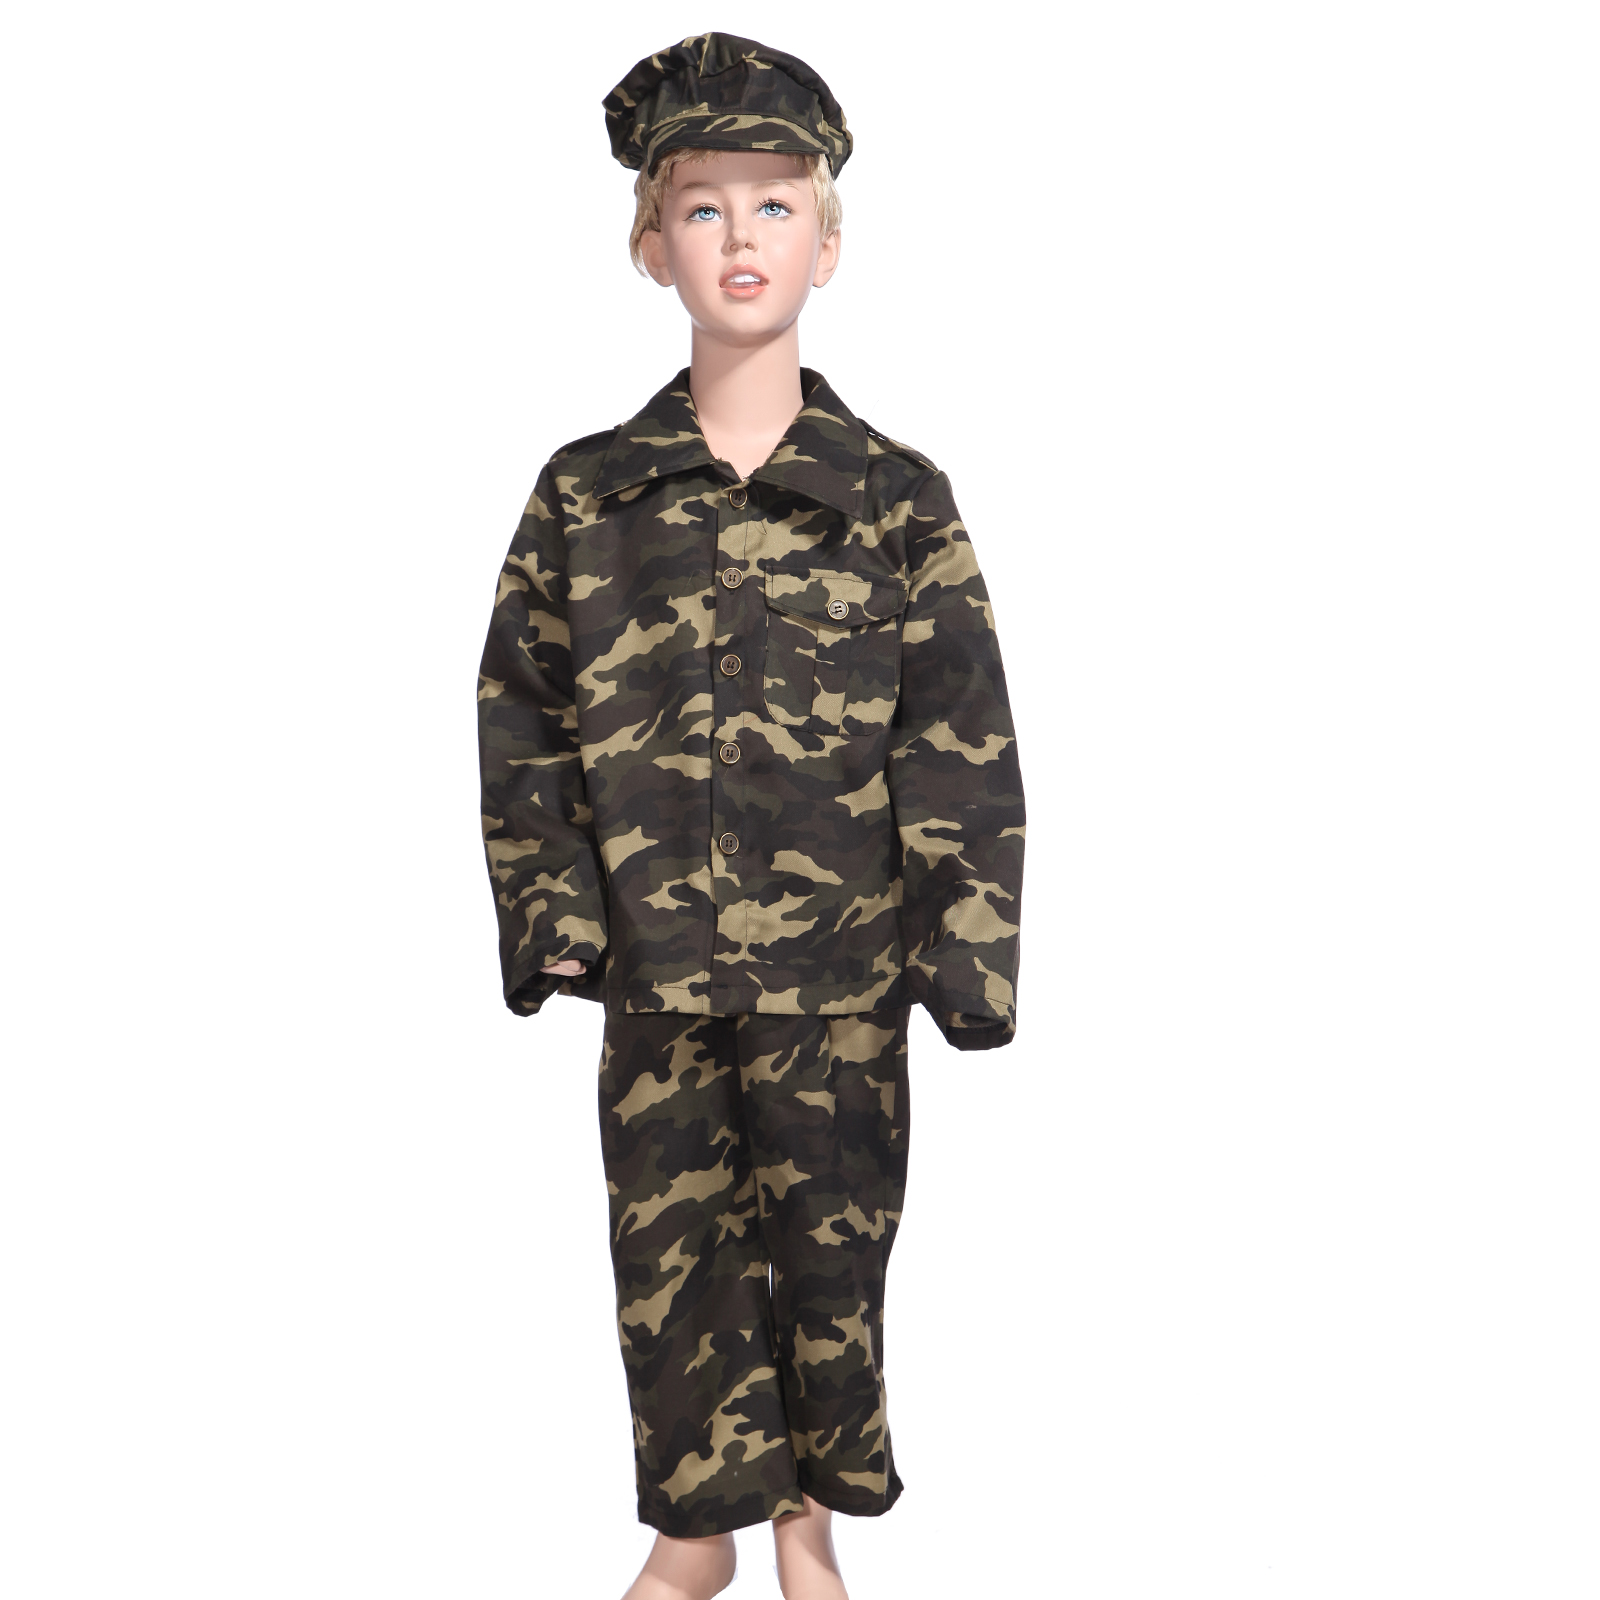 fasching jungen tarnfarbe kost m milit r soldat armee uniform k mpfer gr 128 140 ebay. Black Bedroom Furniture Sets. Home Design Ideas